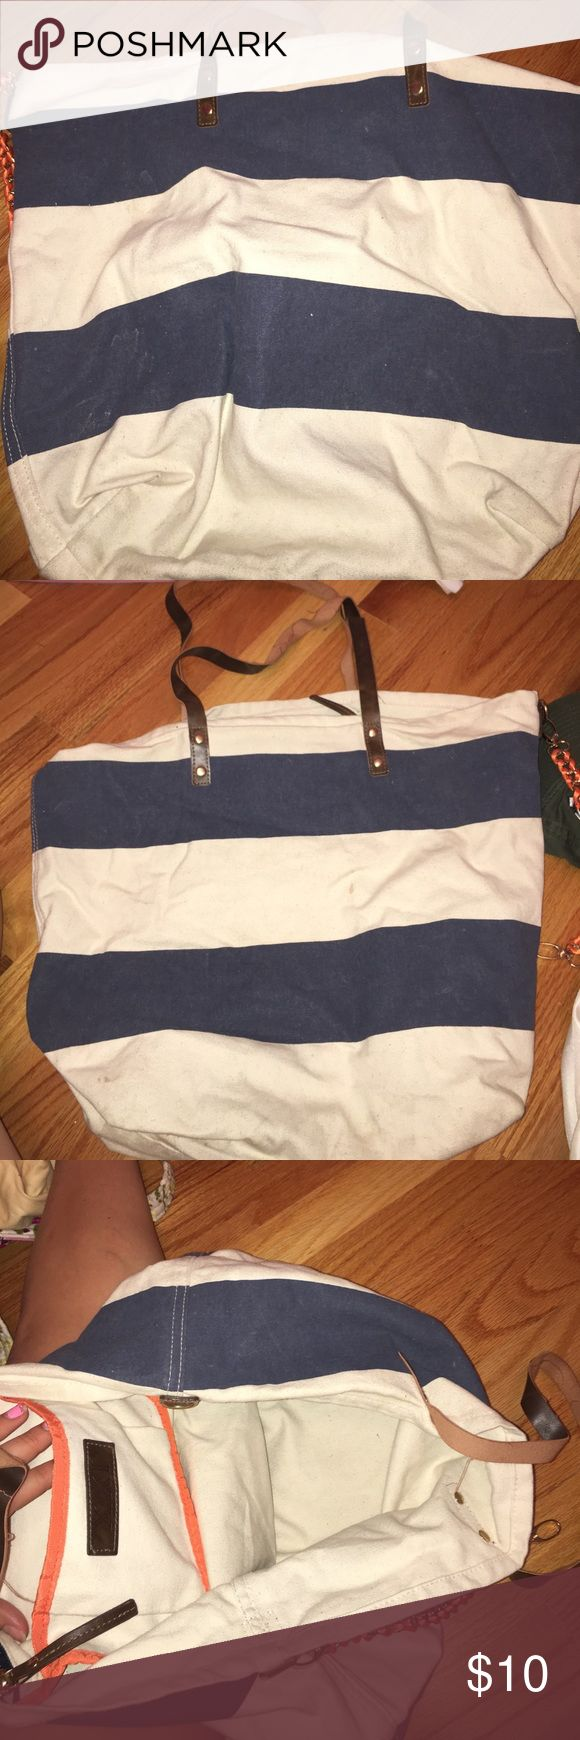 Striped tote bag Striped blue and white tote bag - blue and white. HAS A FEW STAINS (as shown in picture) Bags Totes